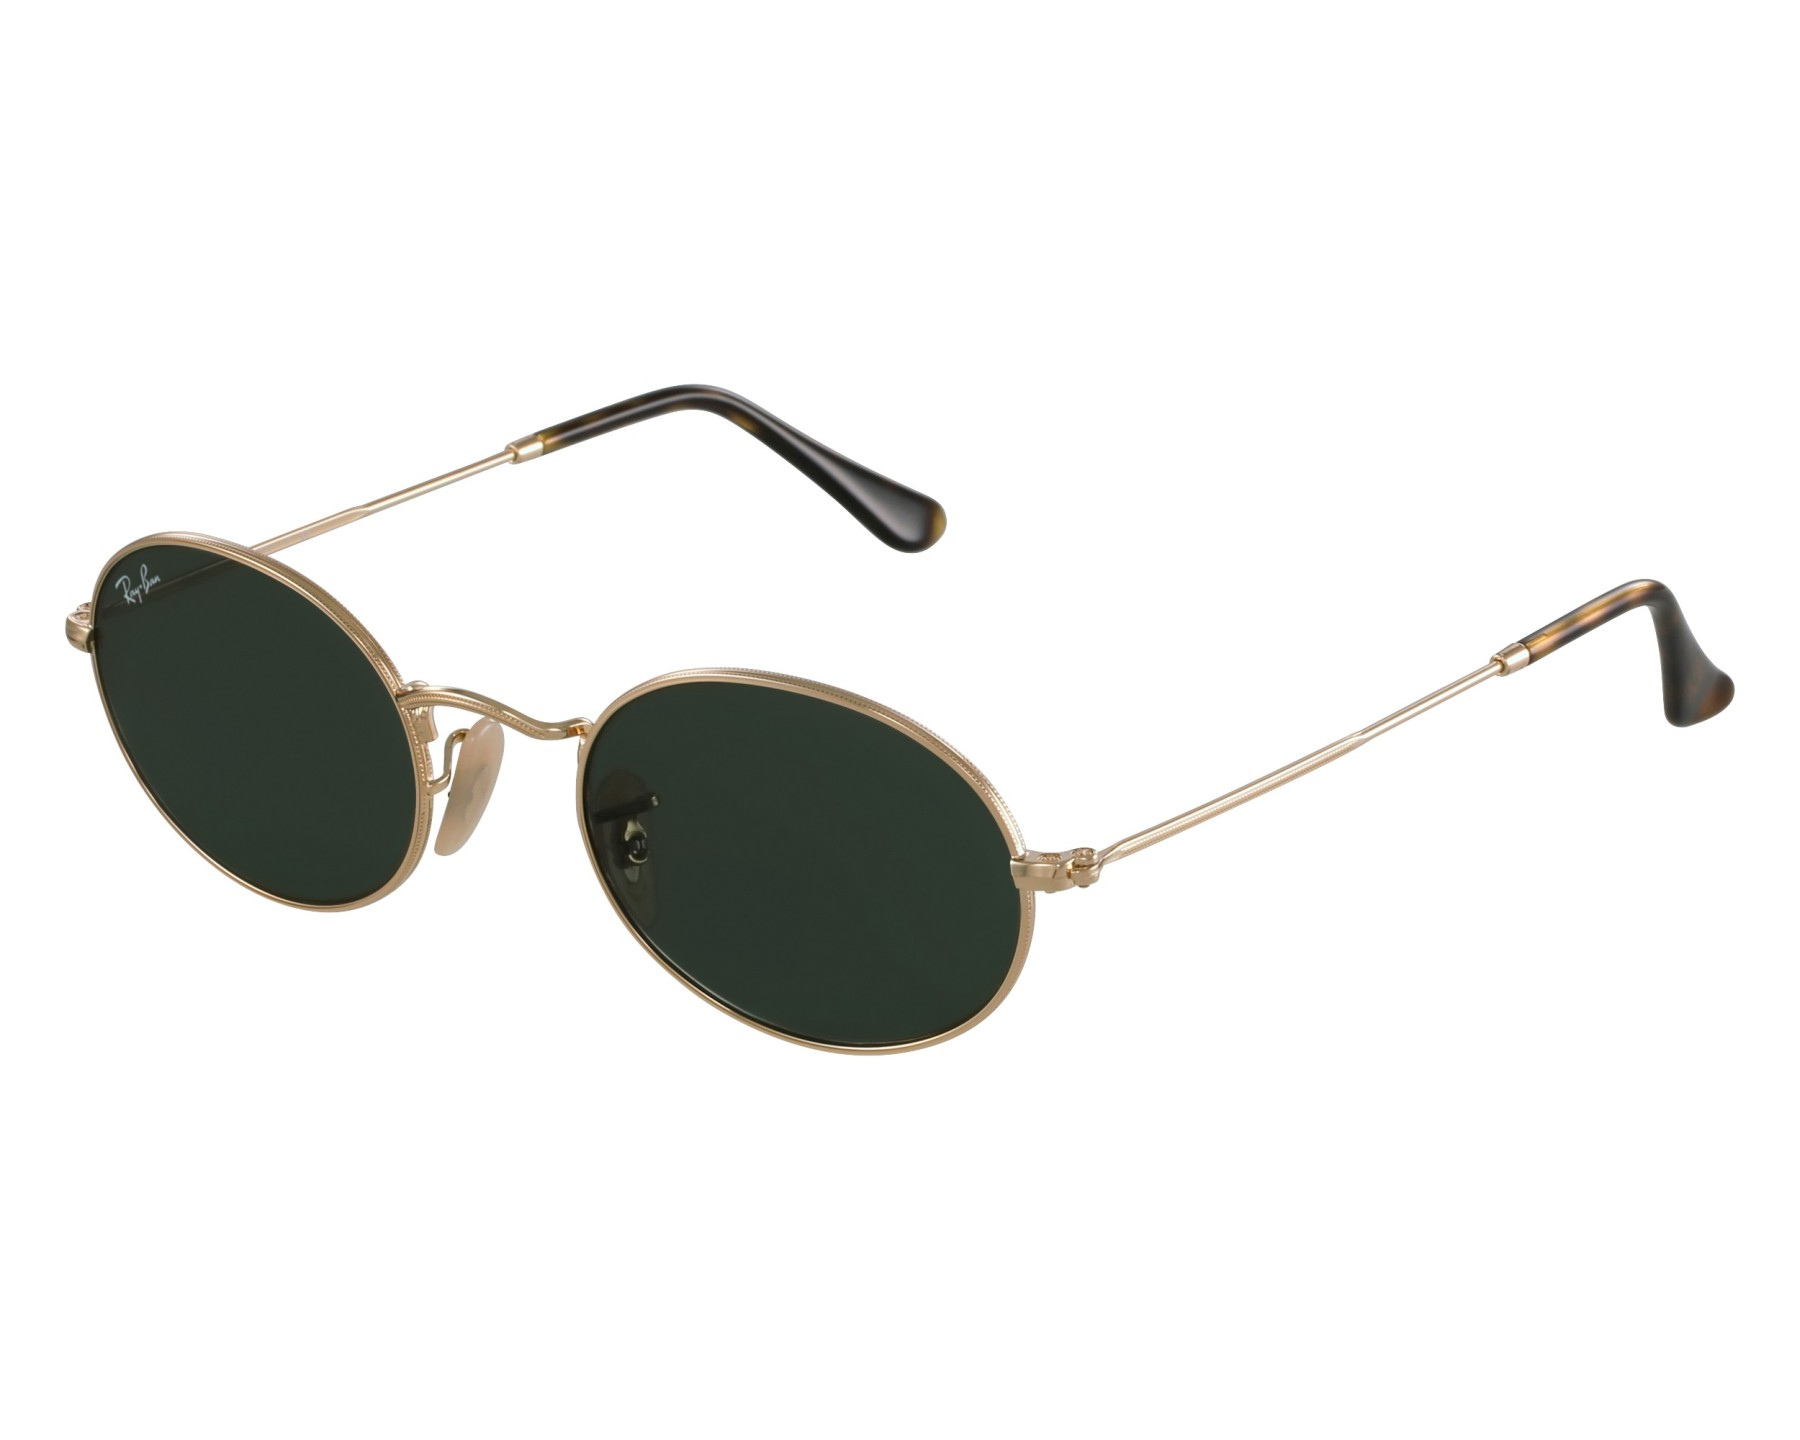 e65500767b7 Sunglasses Ray-Ban RB-3547-N 001 48-21 Gold front view